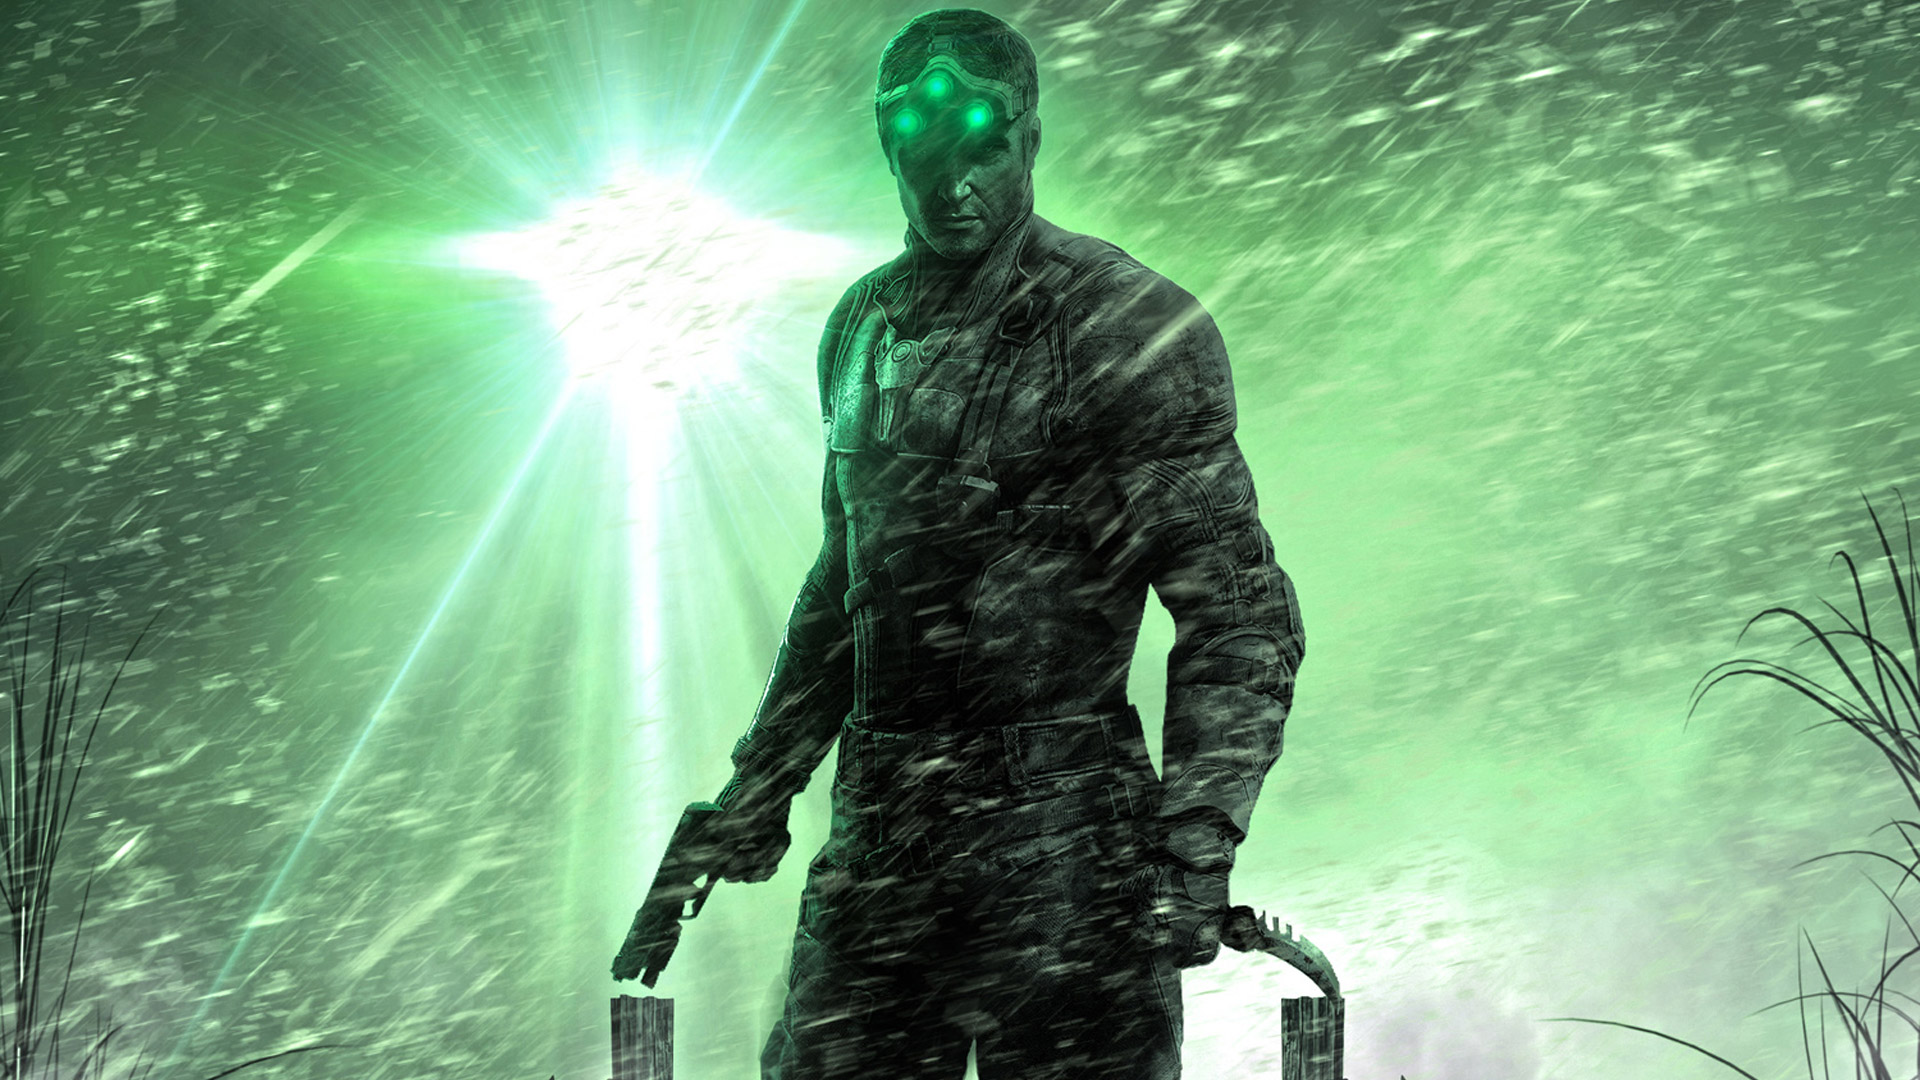 Гендиректор Ubisoft о новой Splinter Cell